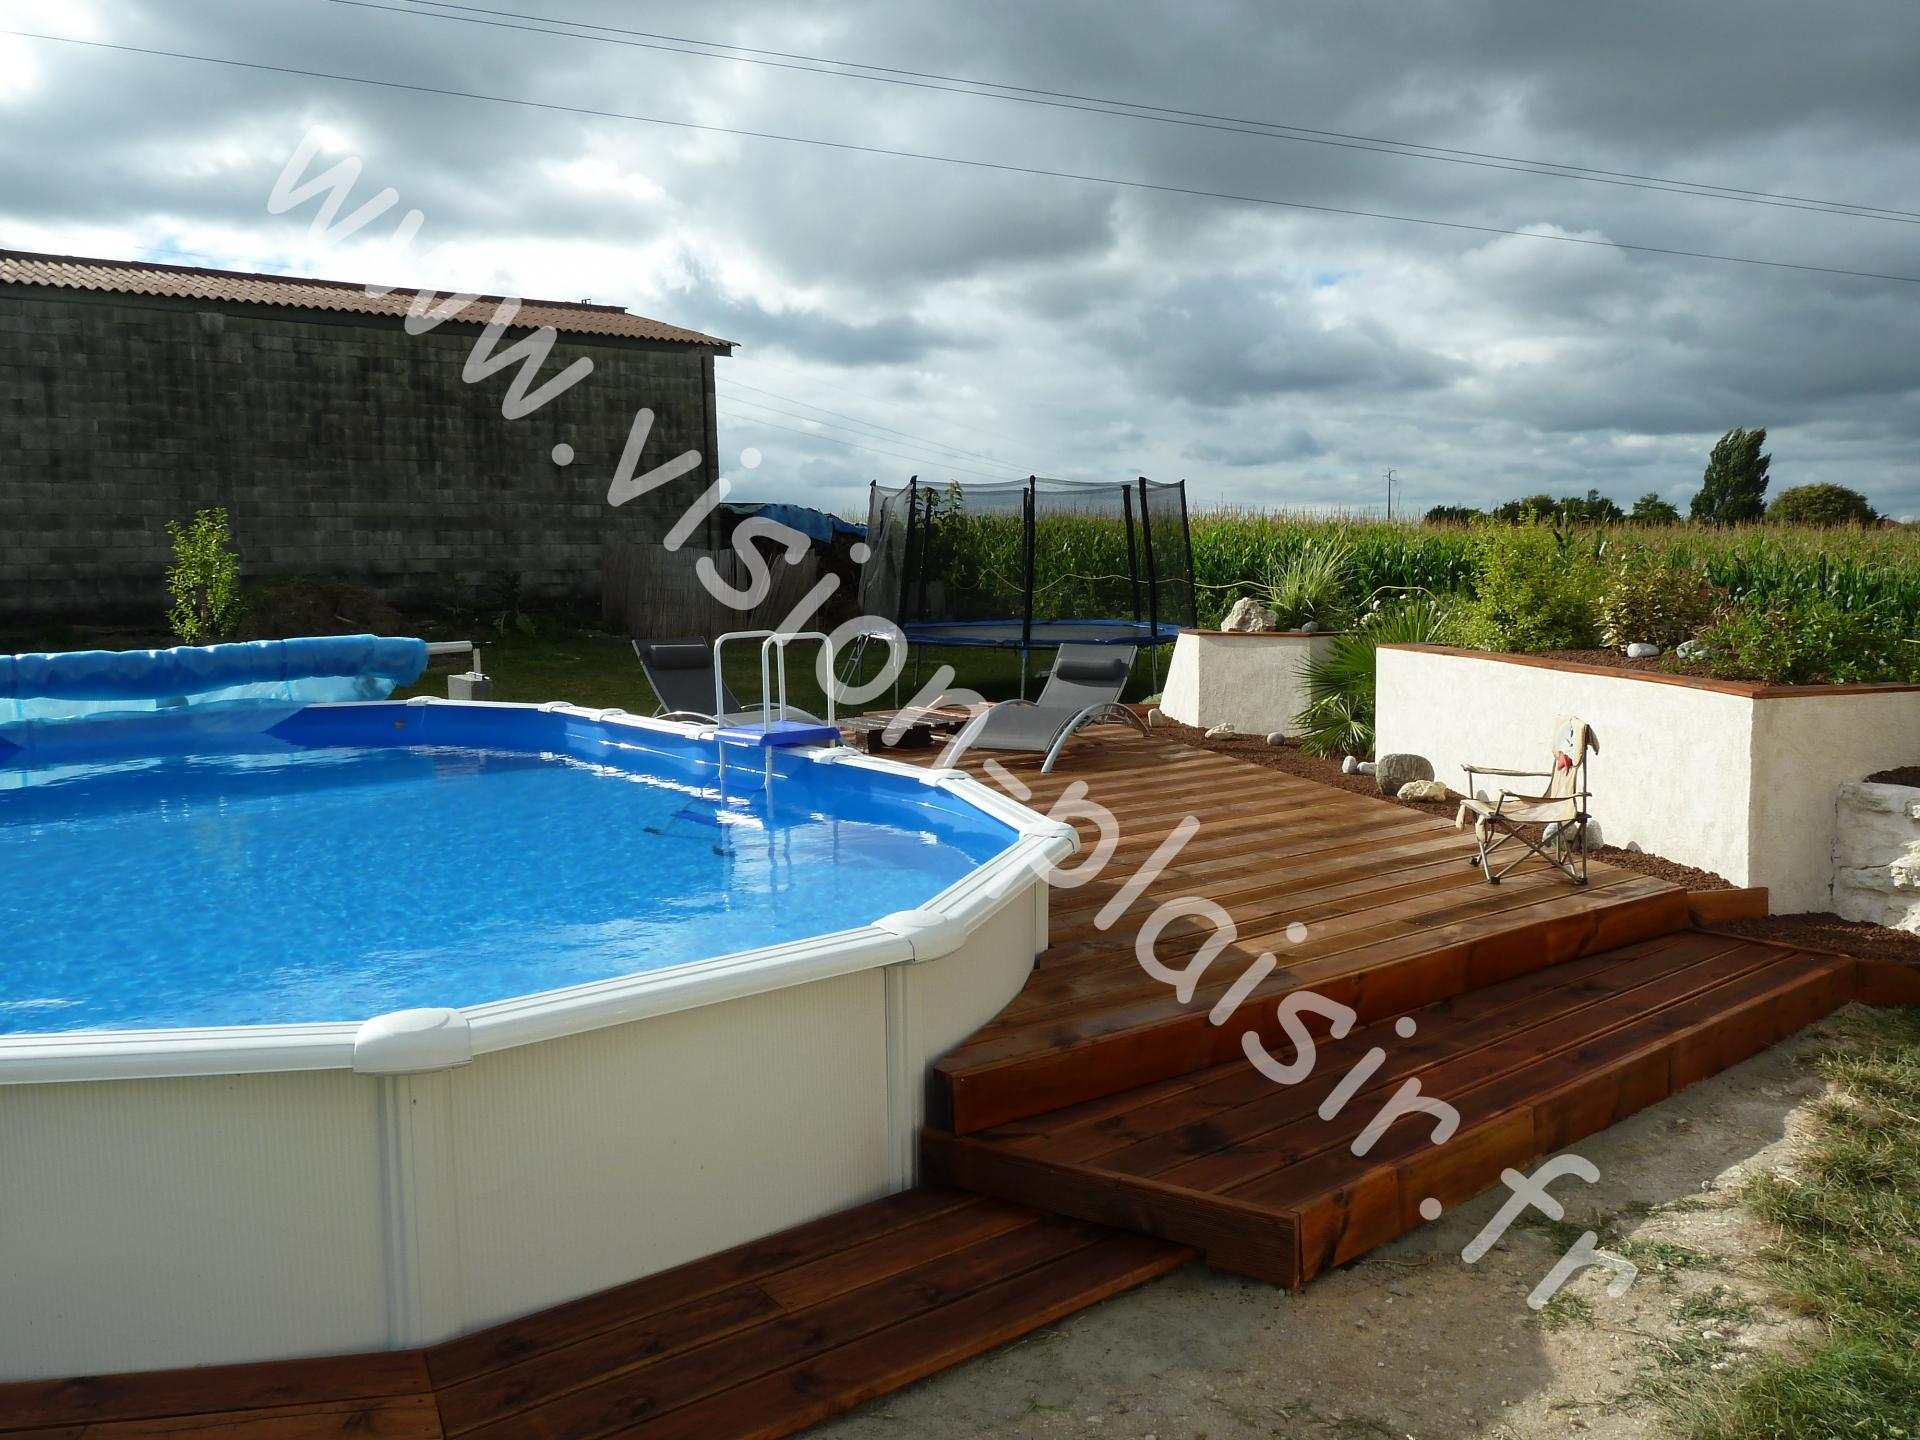 Blog de vision plaisir piscine hors sol semi enterr e for Piscine hors sol enterree